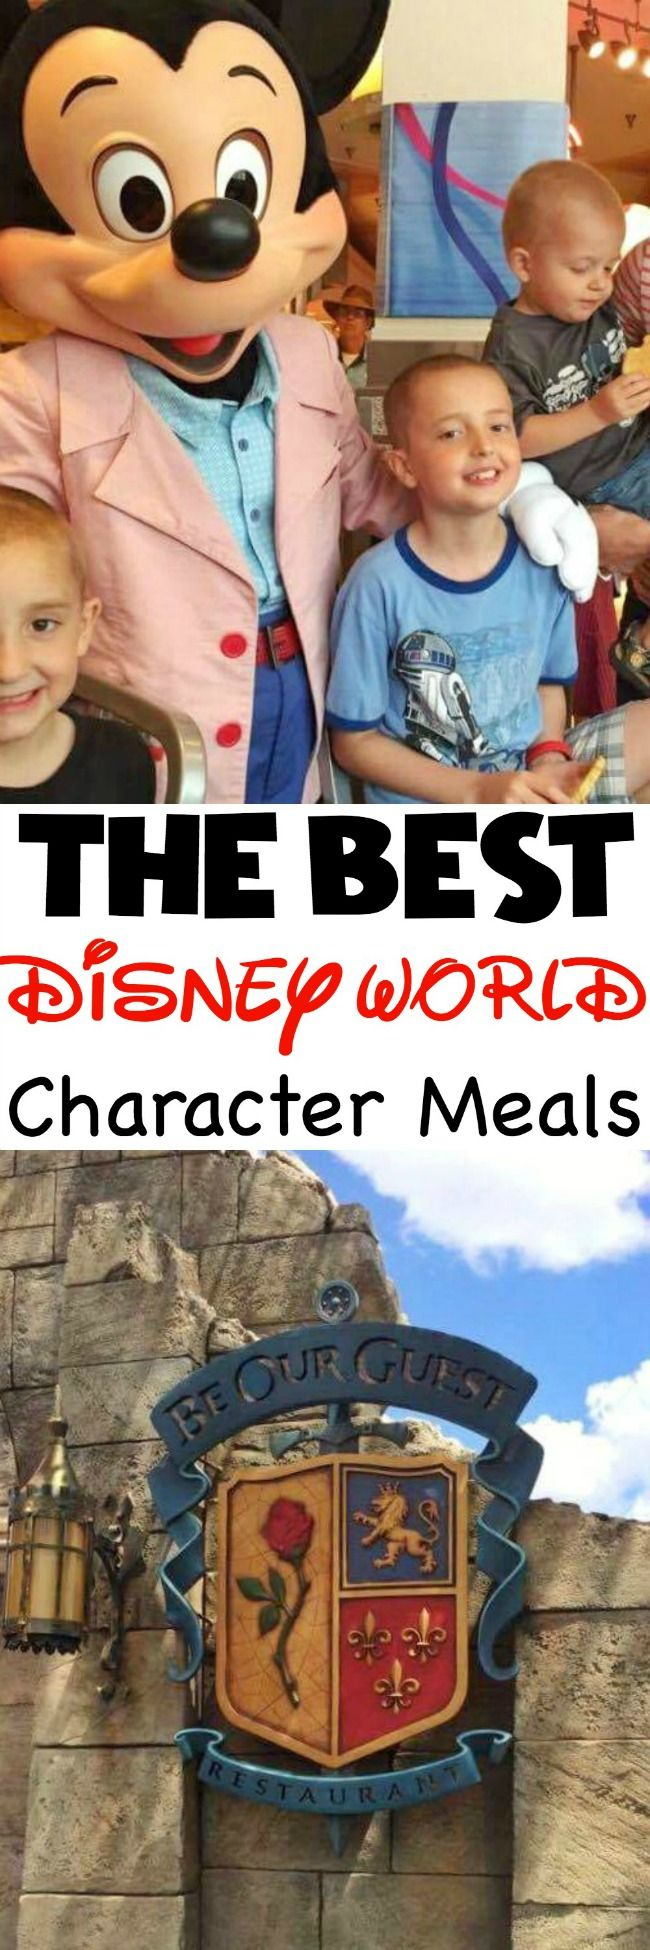 Tips and Tricks for the Best Disney World Character Meals at Magic Kingdom, Epcot, Disney's Animal Kingdom and Disney's Hollywood Studios.